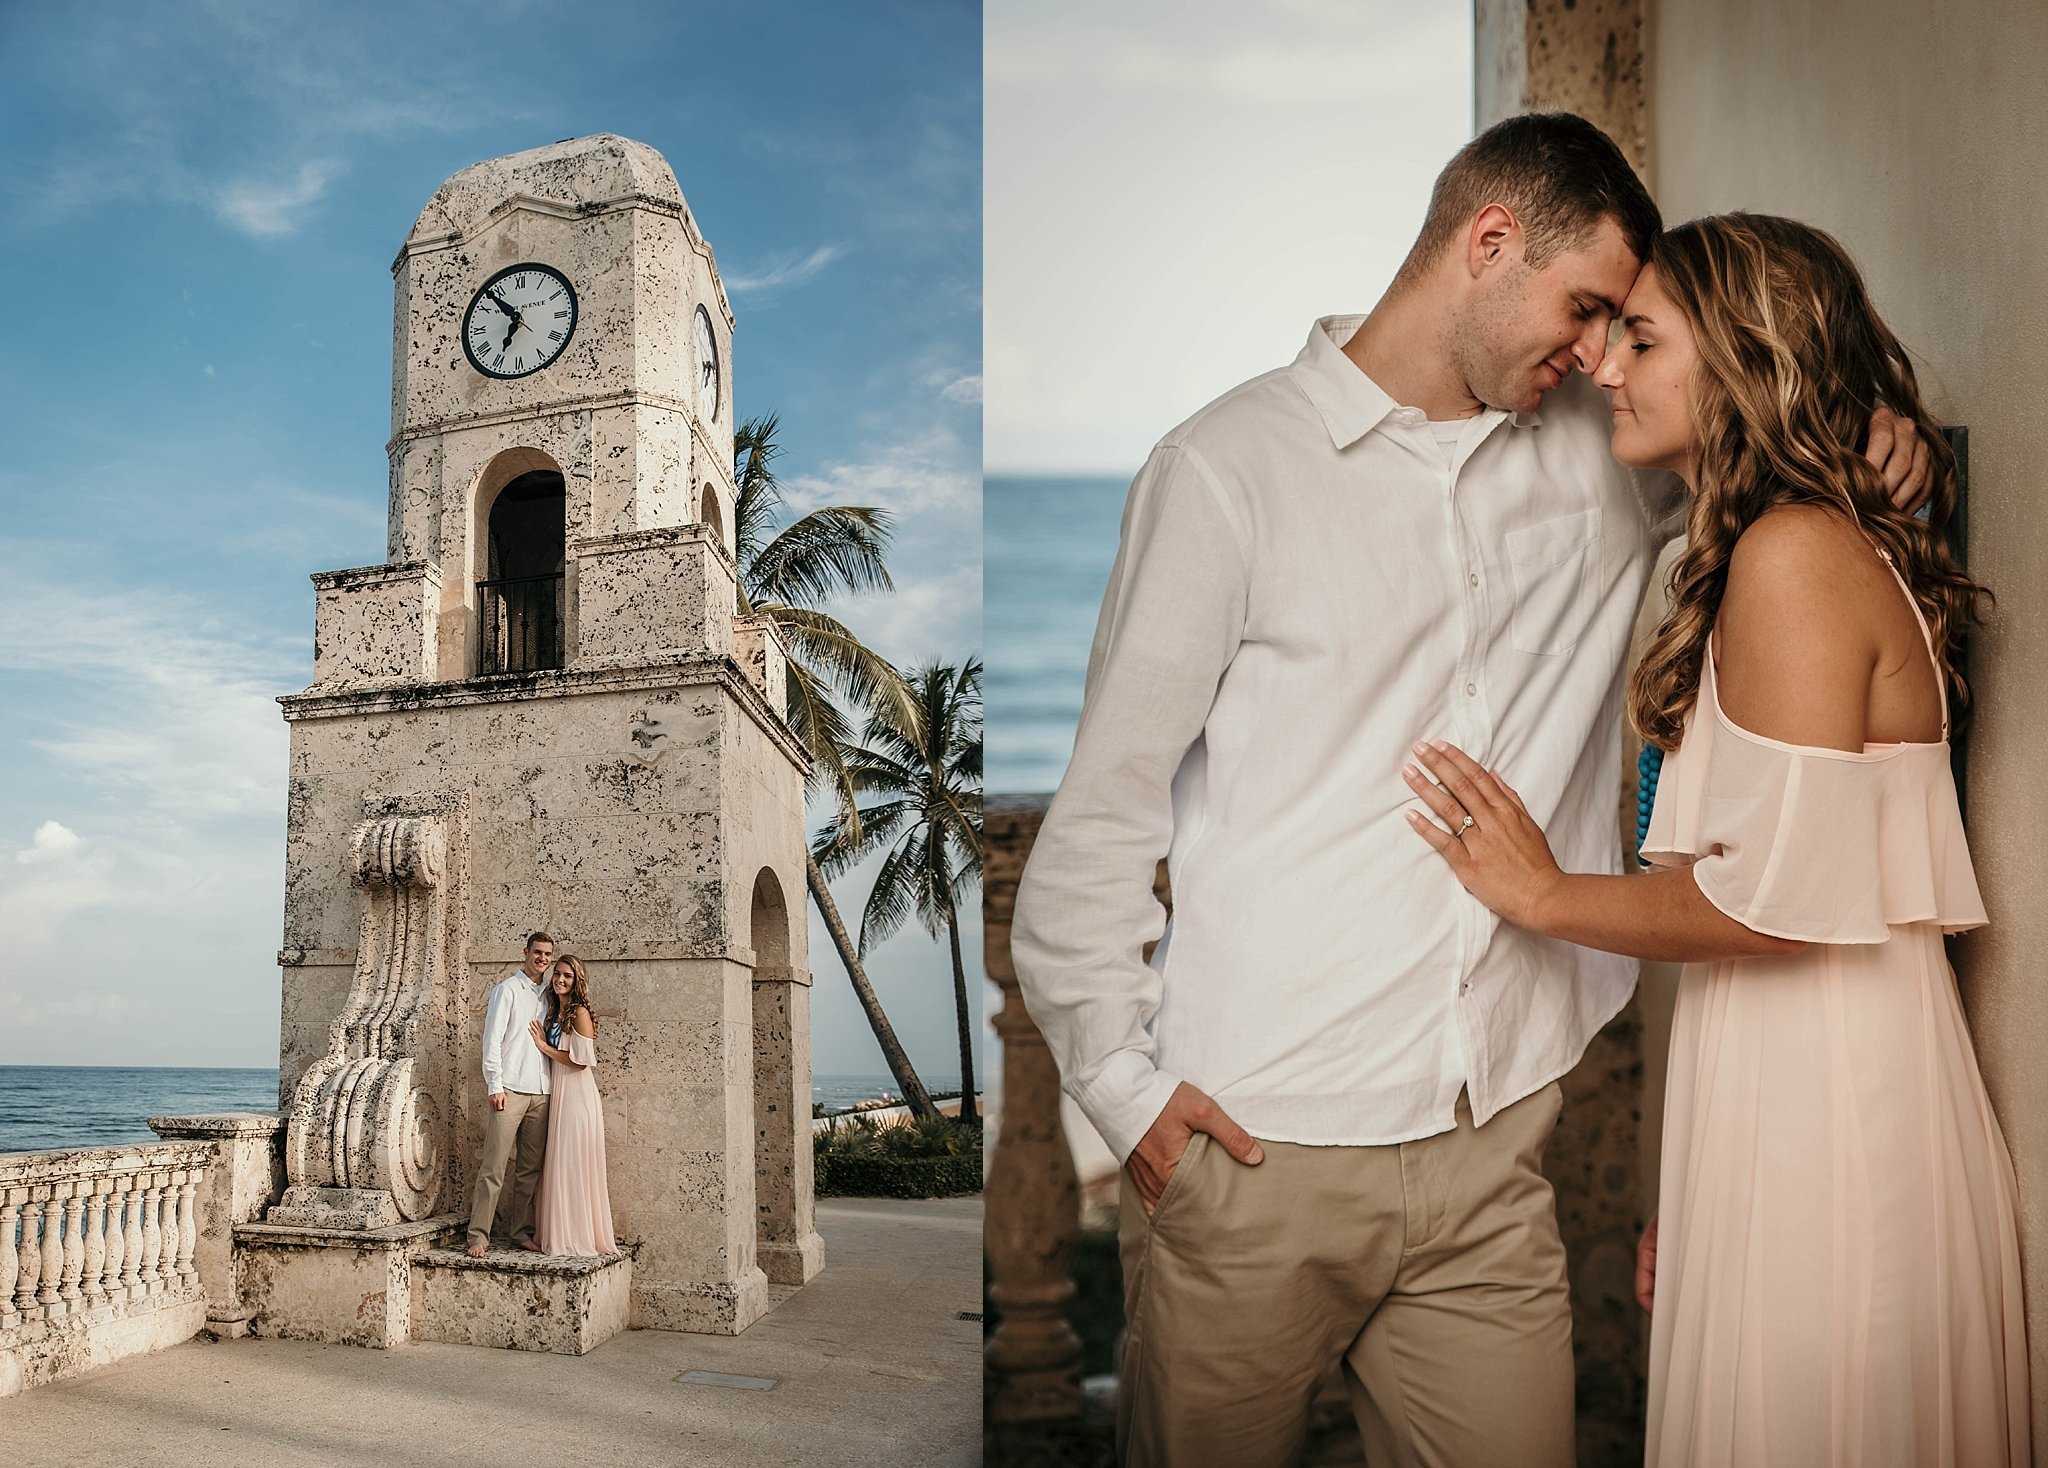 palm-beach-engagement-photos-florida-wedding-photographer_0001.jpg